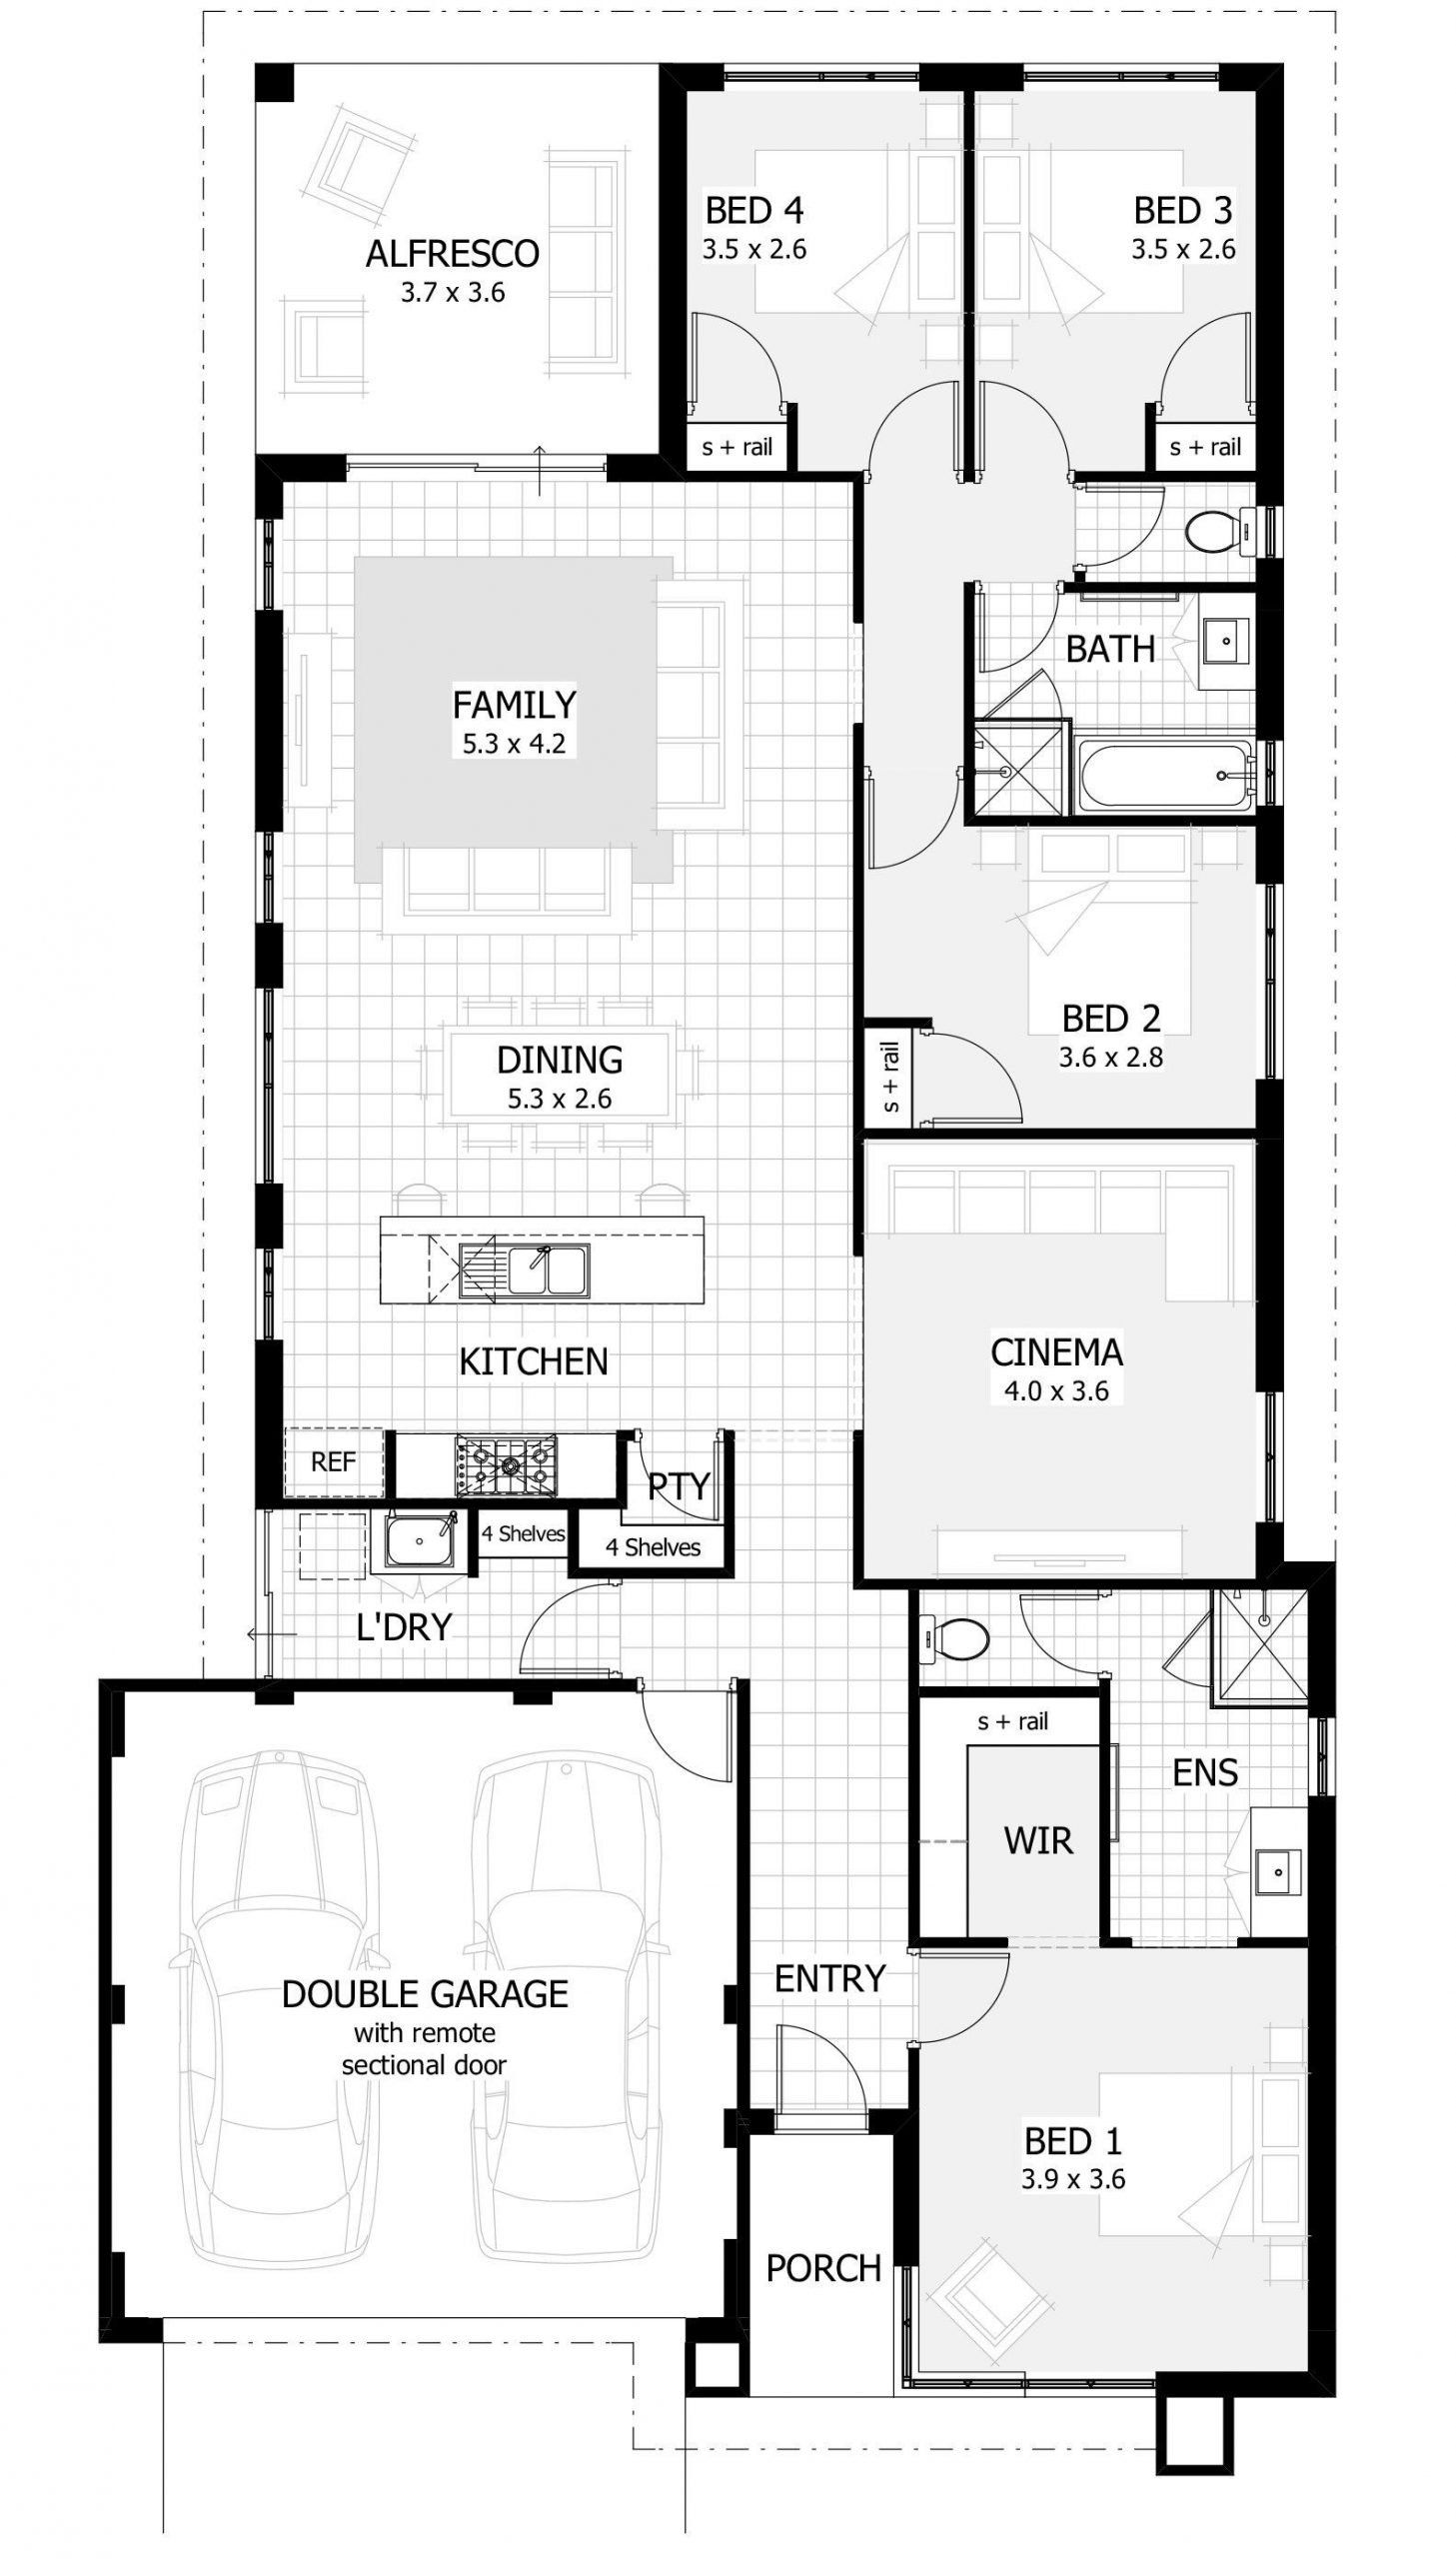 Single Story 4 Bedroom Farmhouse Plans Lovely Single Story 4 Bedroom Farmhouse Plans 4 Single Storey House Plans House Plans Australia Bedroom House Plans